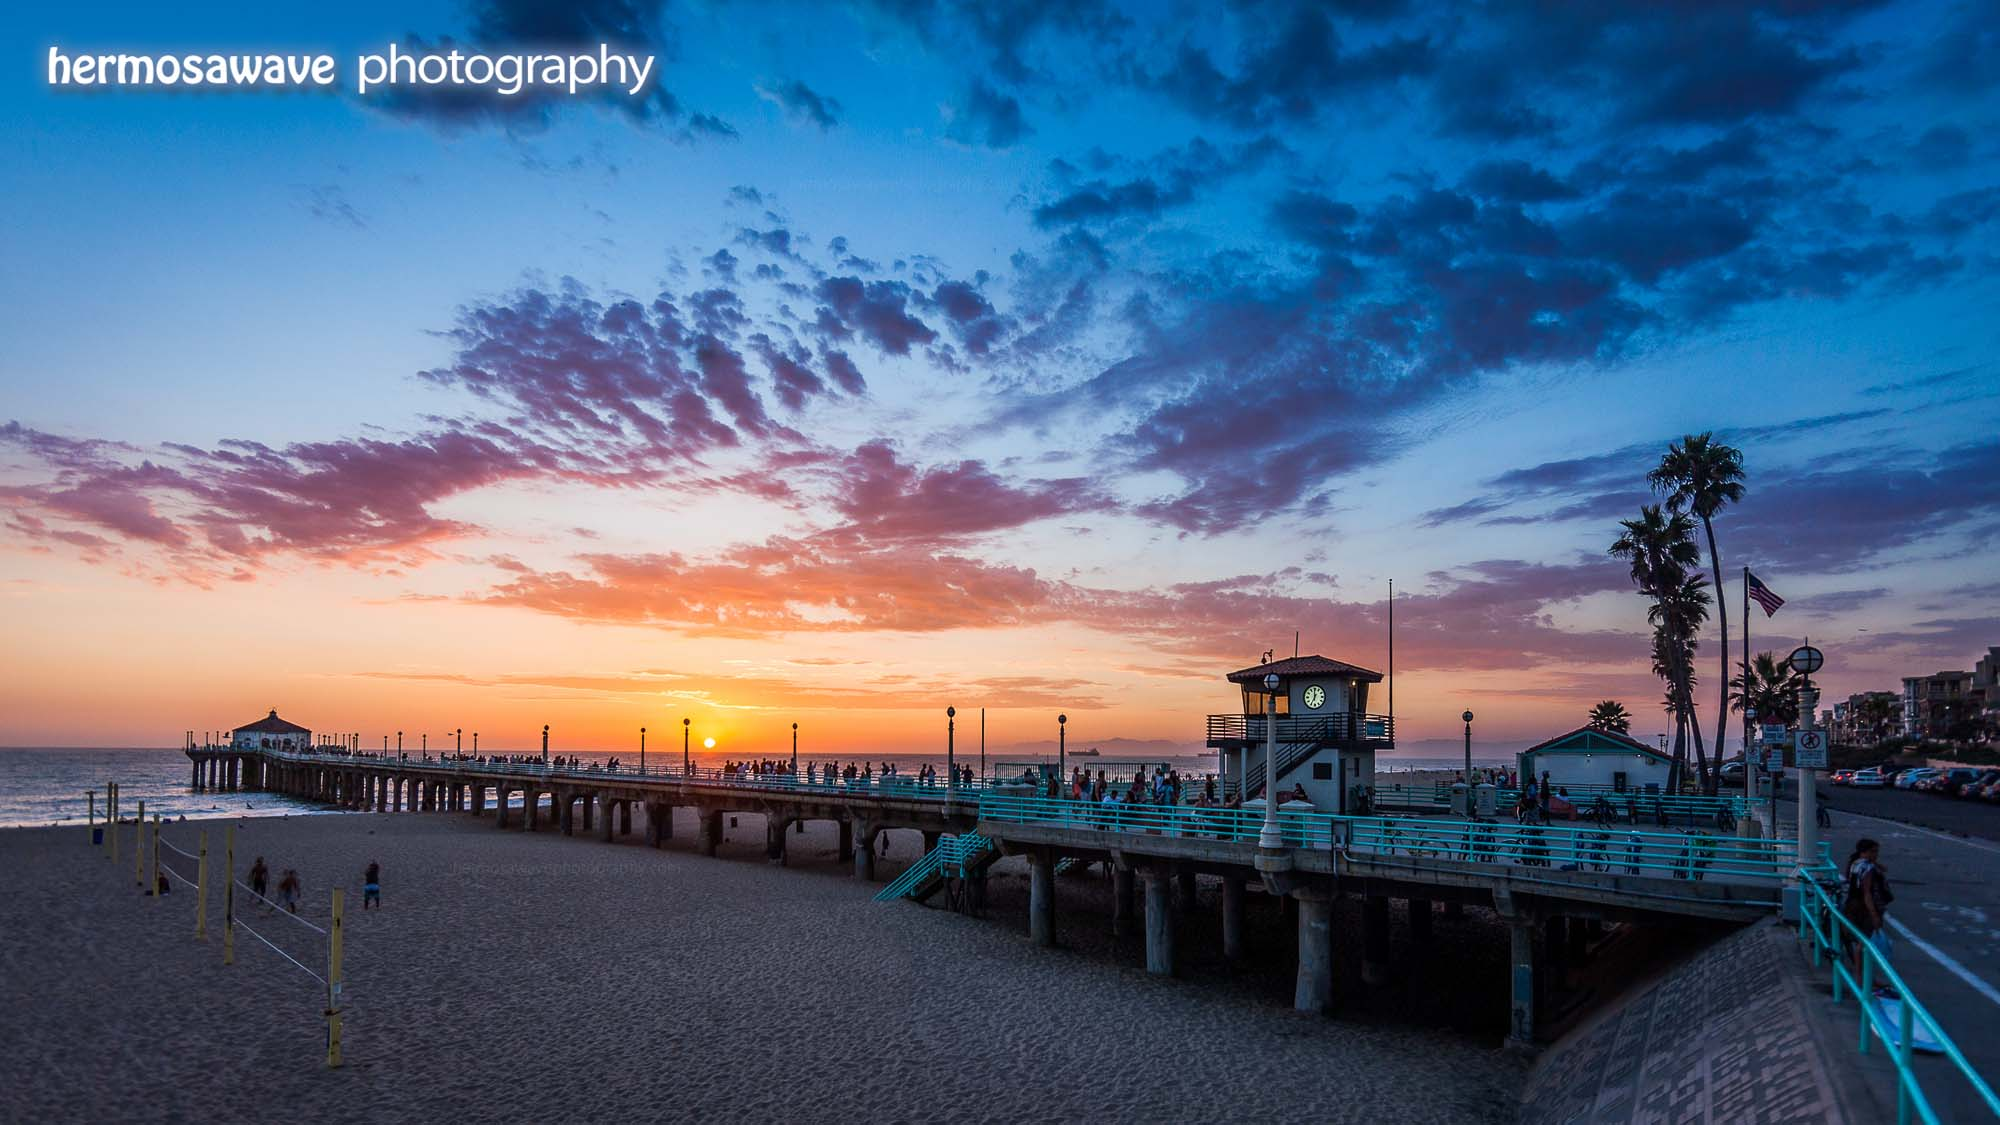 Sunset at the Manhattan Beach Pier